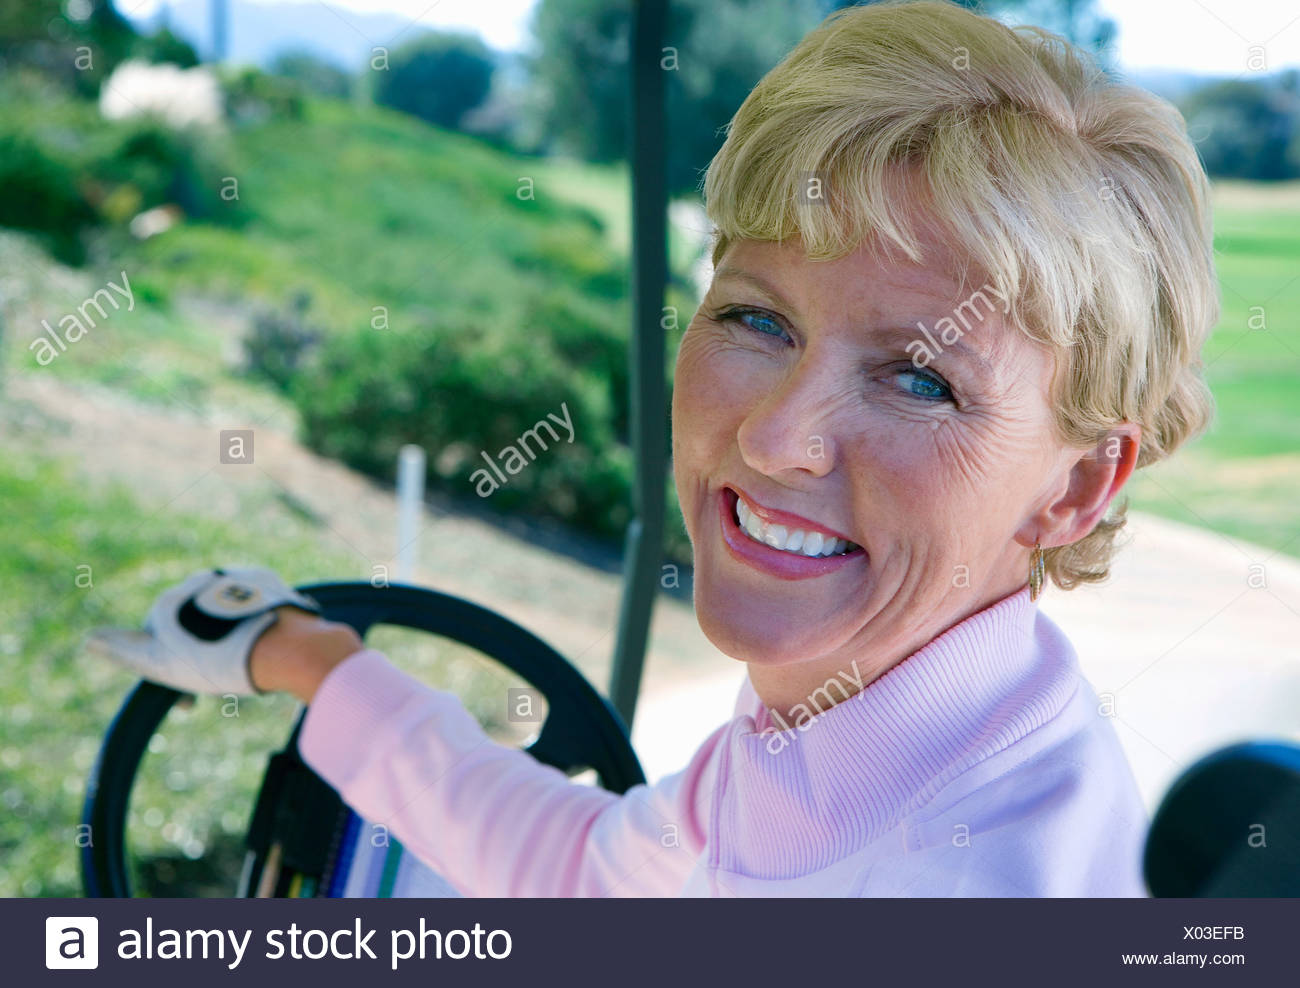 Mature woman driving golf buggy on golf course, looking over shoulder, smiling, close-up, rear view, portrait - Stock Image